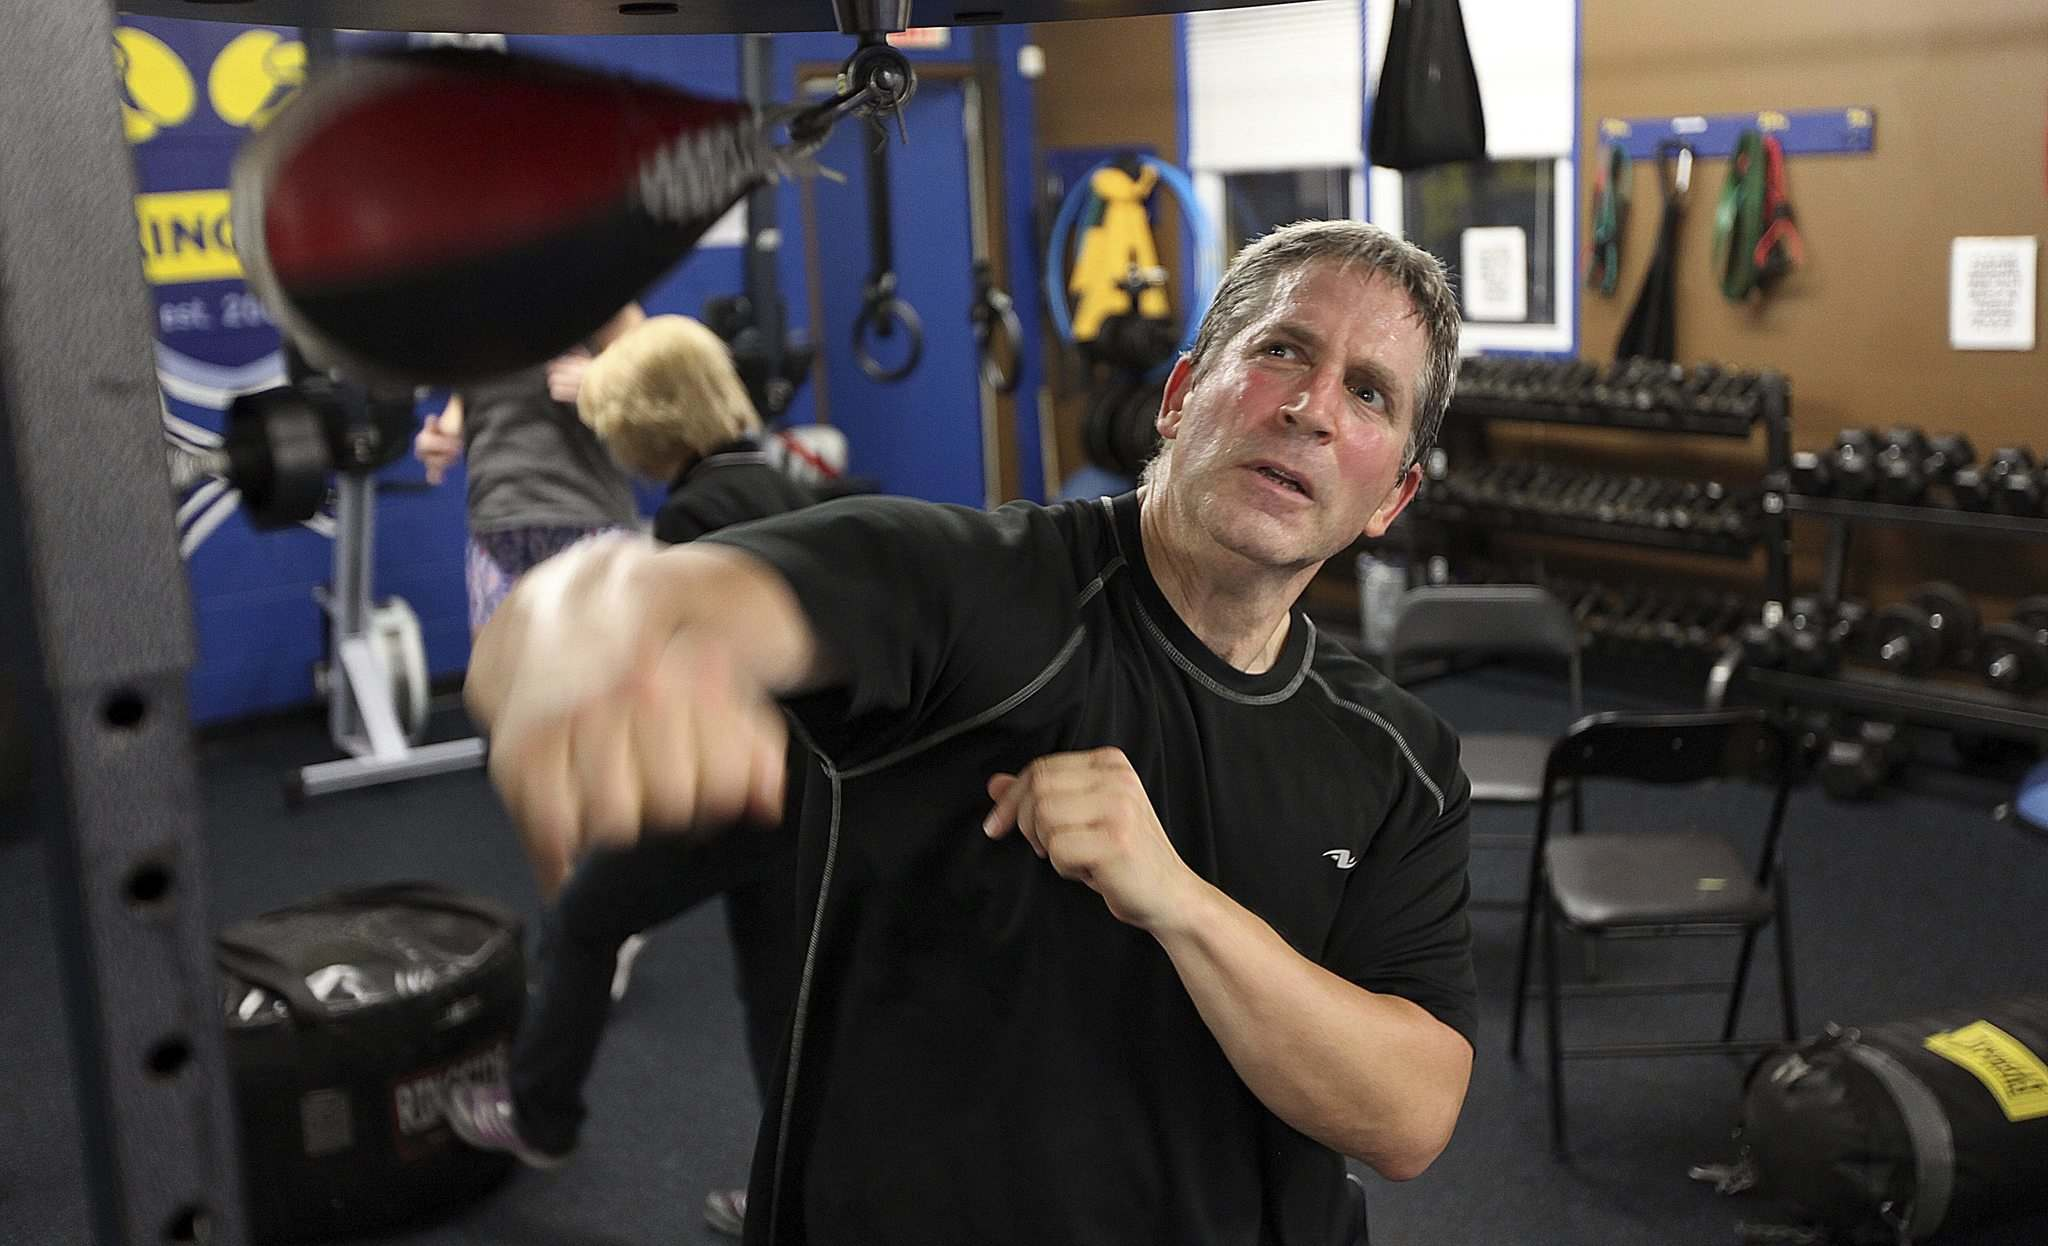 PHIL HOSSACK / WINNIPEG FREE PRESS</p><p>Syd Weidman works the speed bag during a workout.</p>